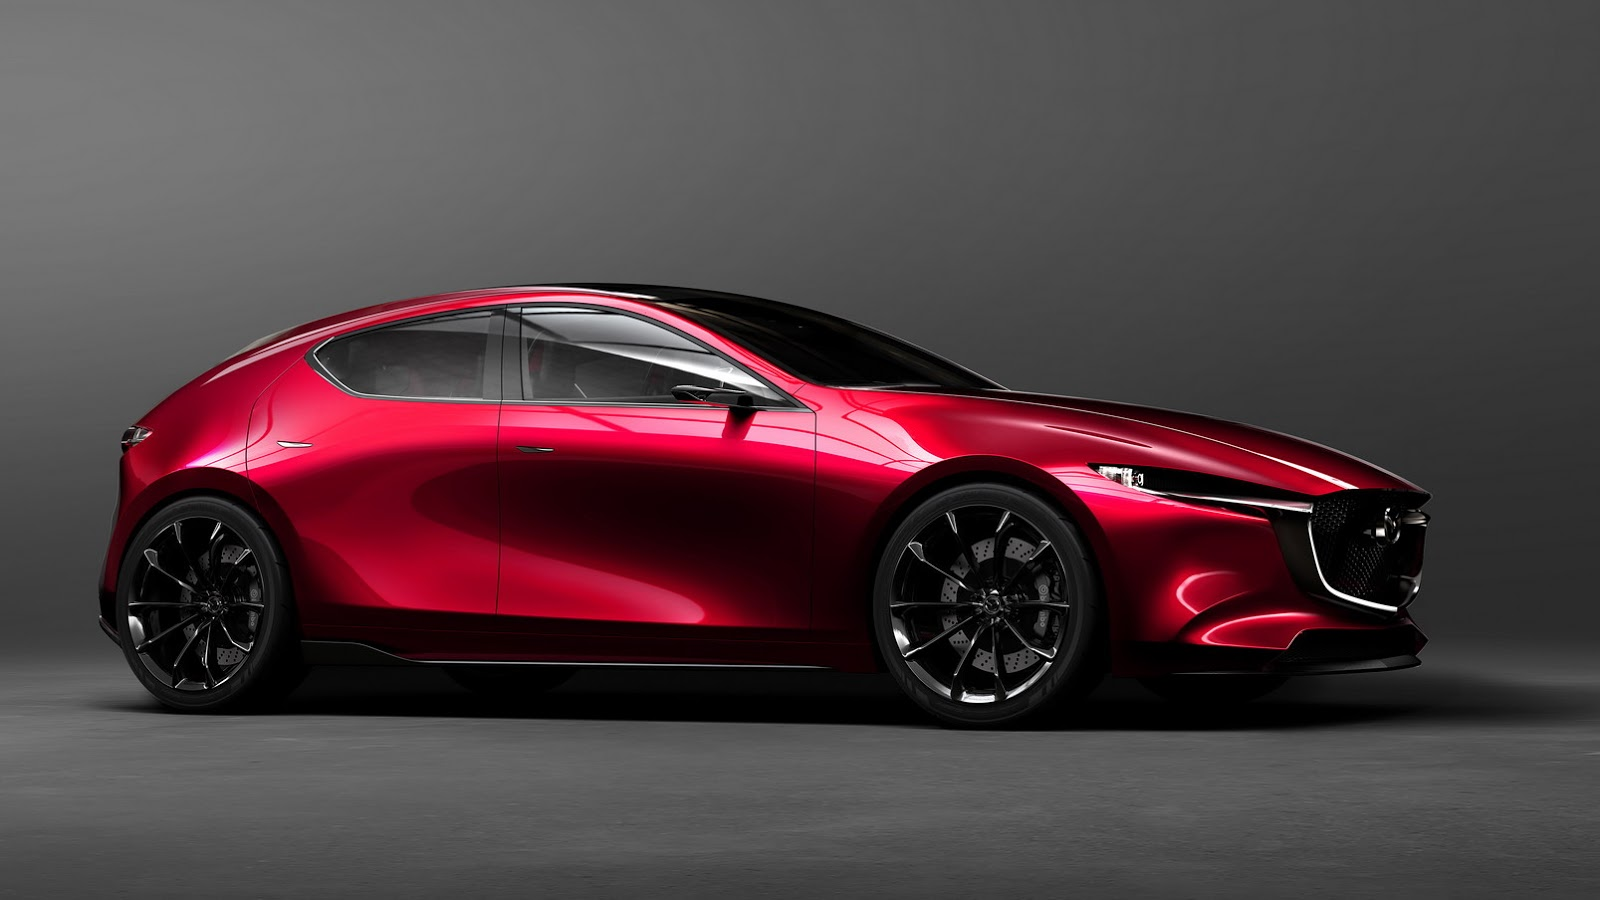 2019 mazda3 rumored to debut at 2018 la auto show autoevolution. Black Bedroom Furniture Sets. Home Design Ideas